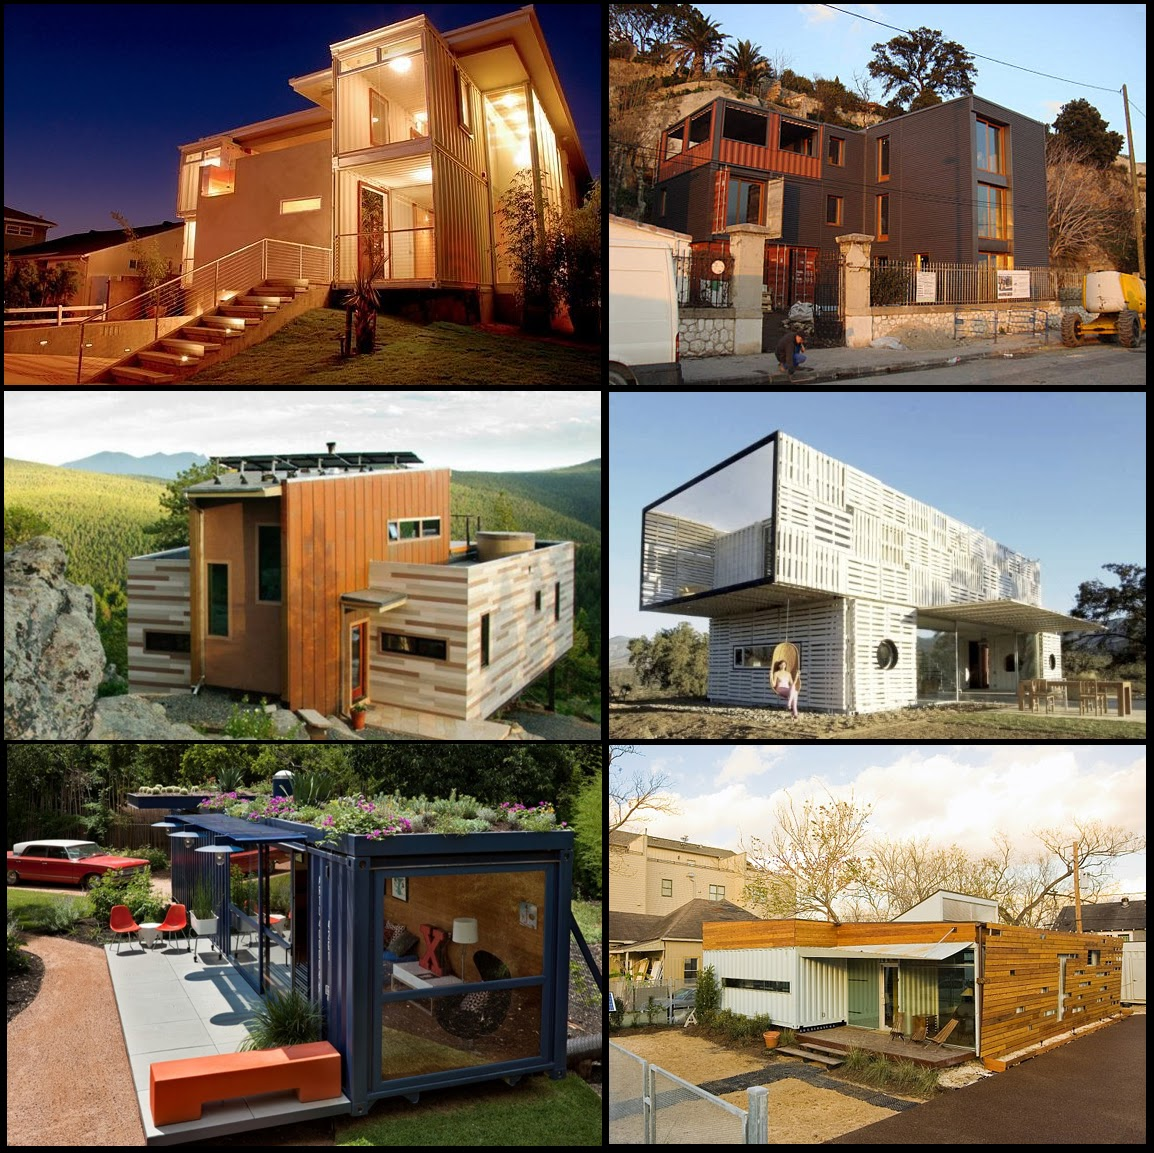 Container houses constru es sustent veis conhe a as for Container casa